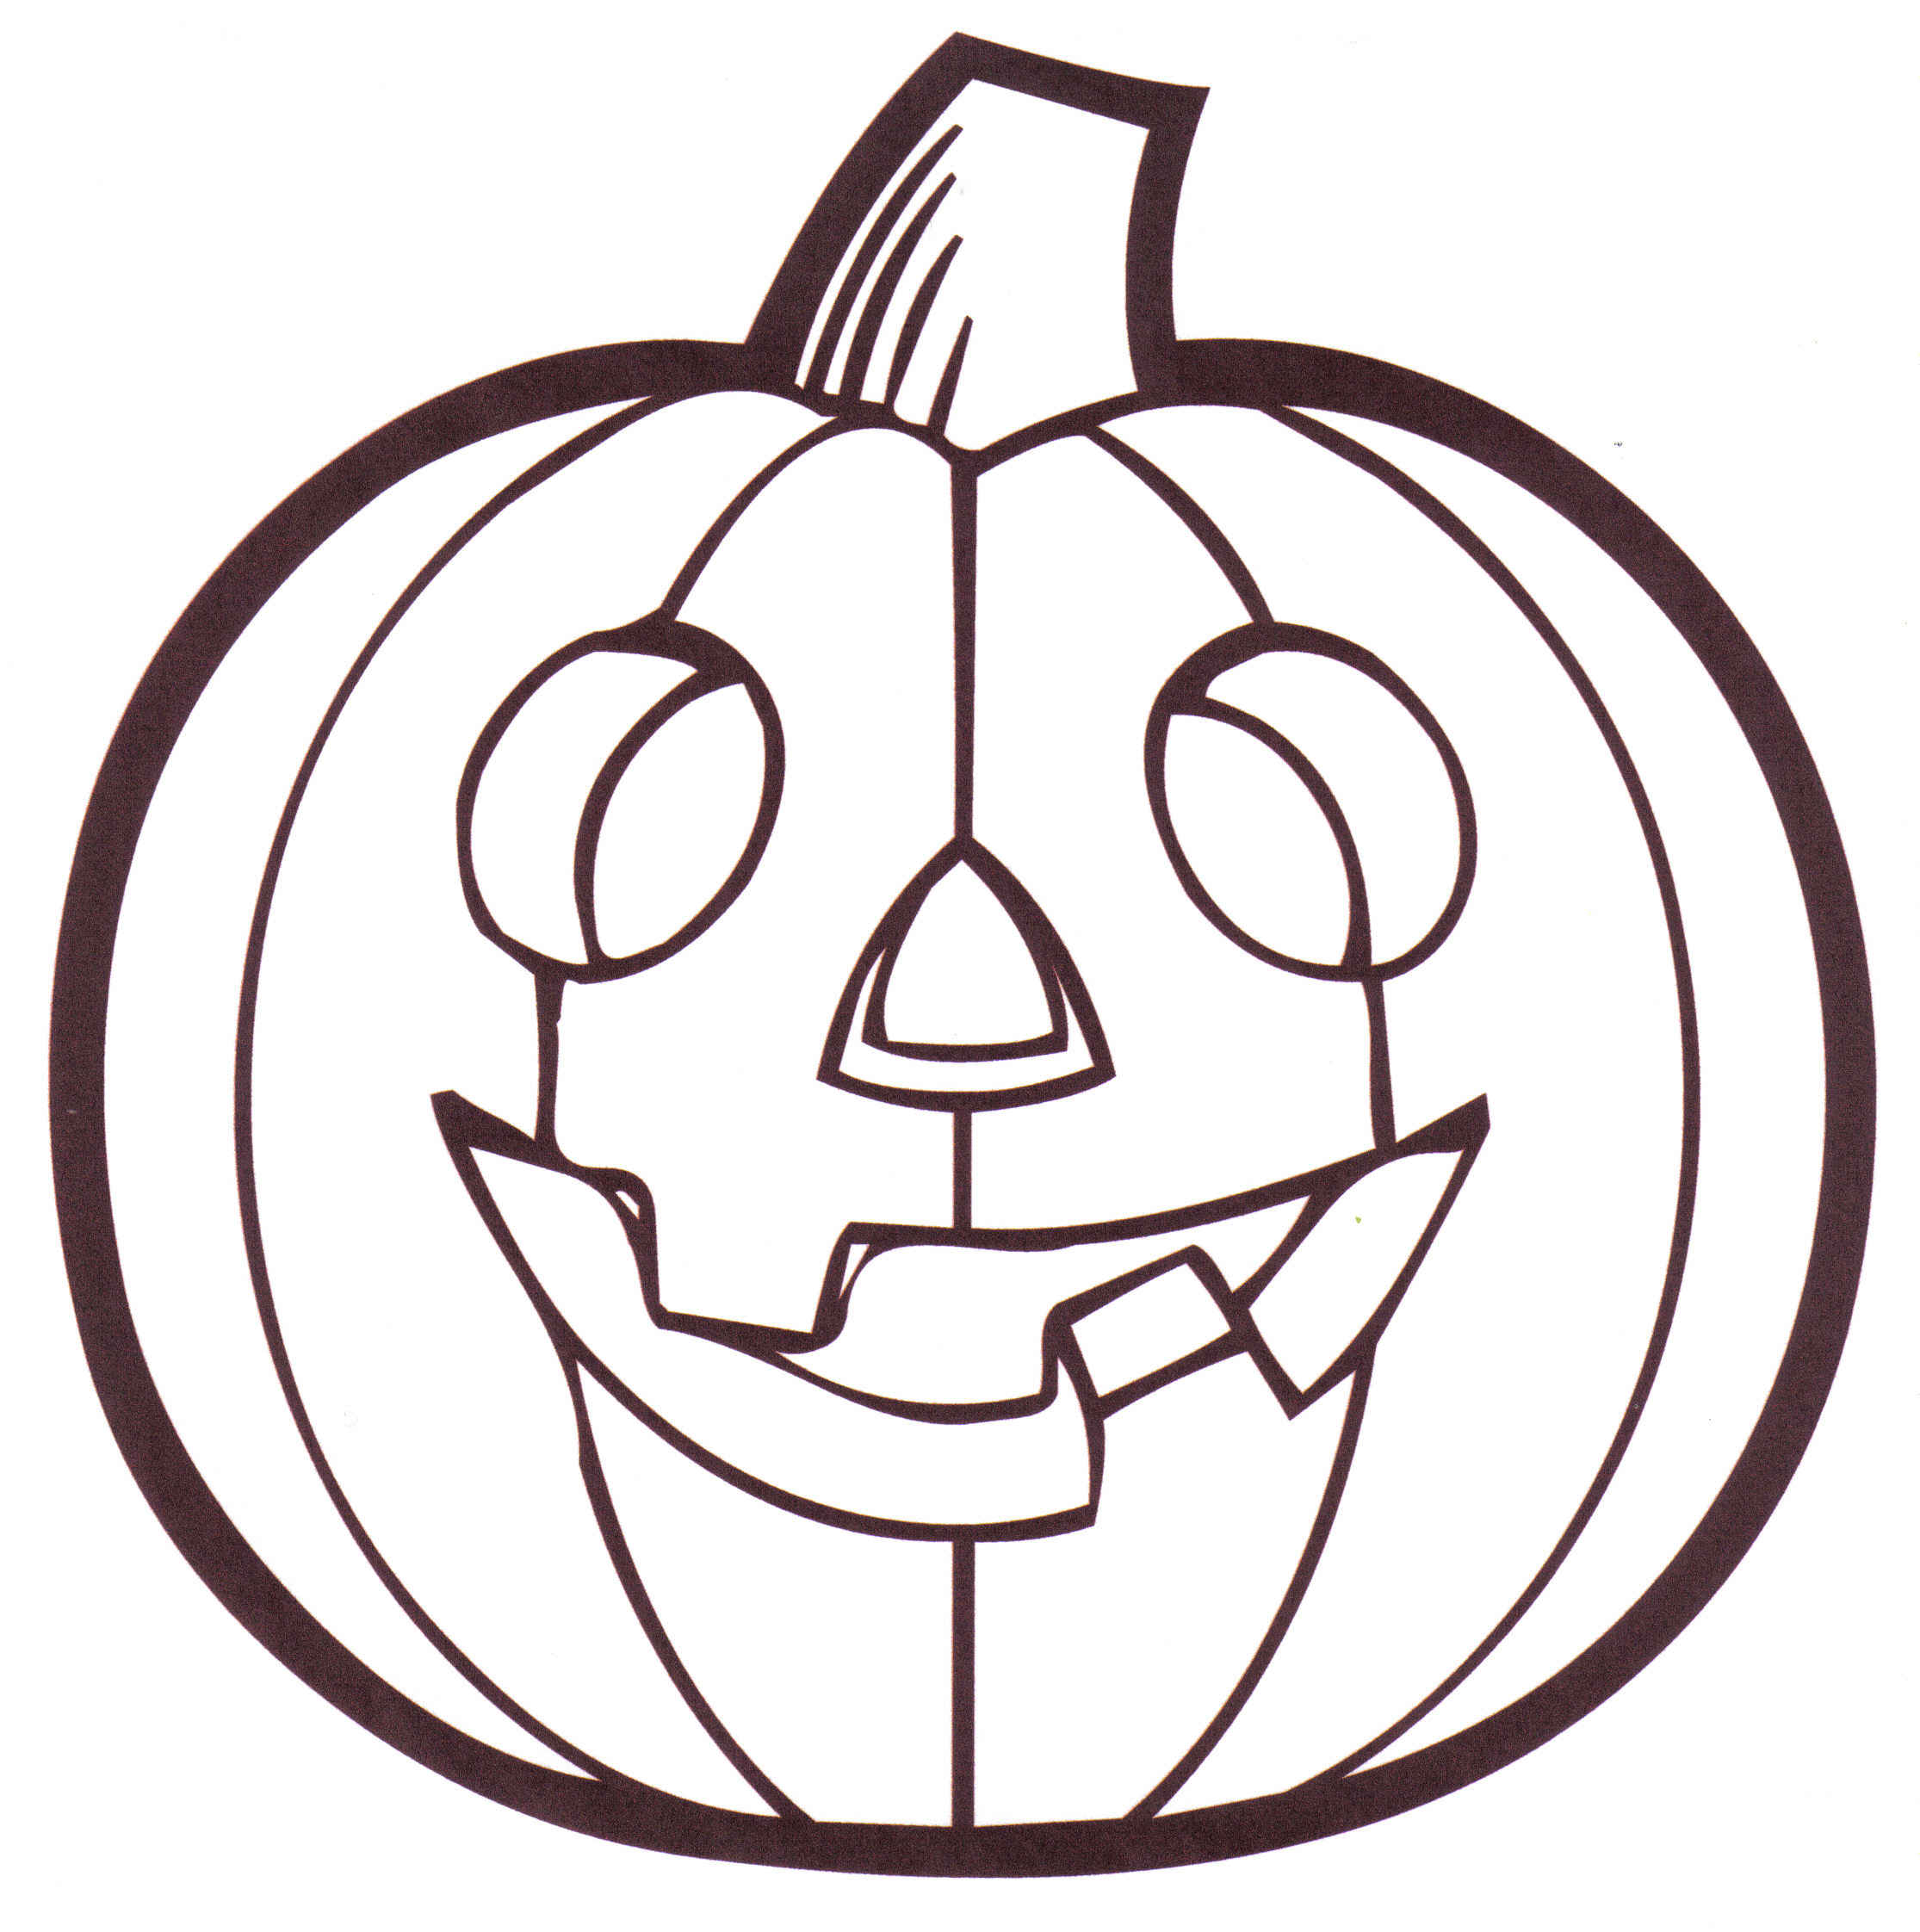 Free line drawing download. Pumpkin clipart printable